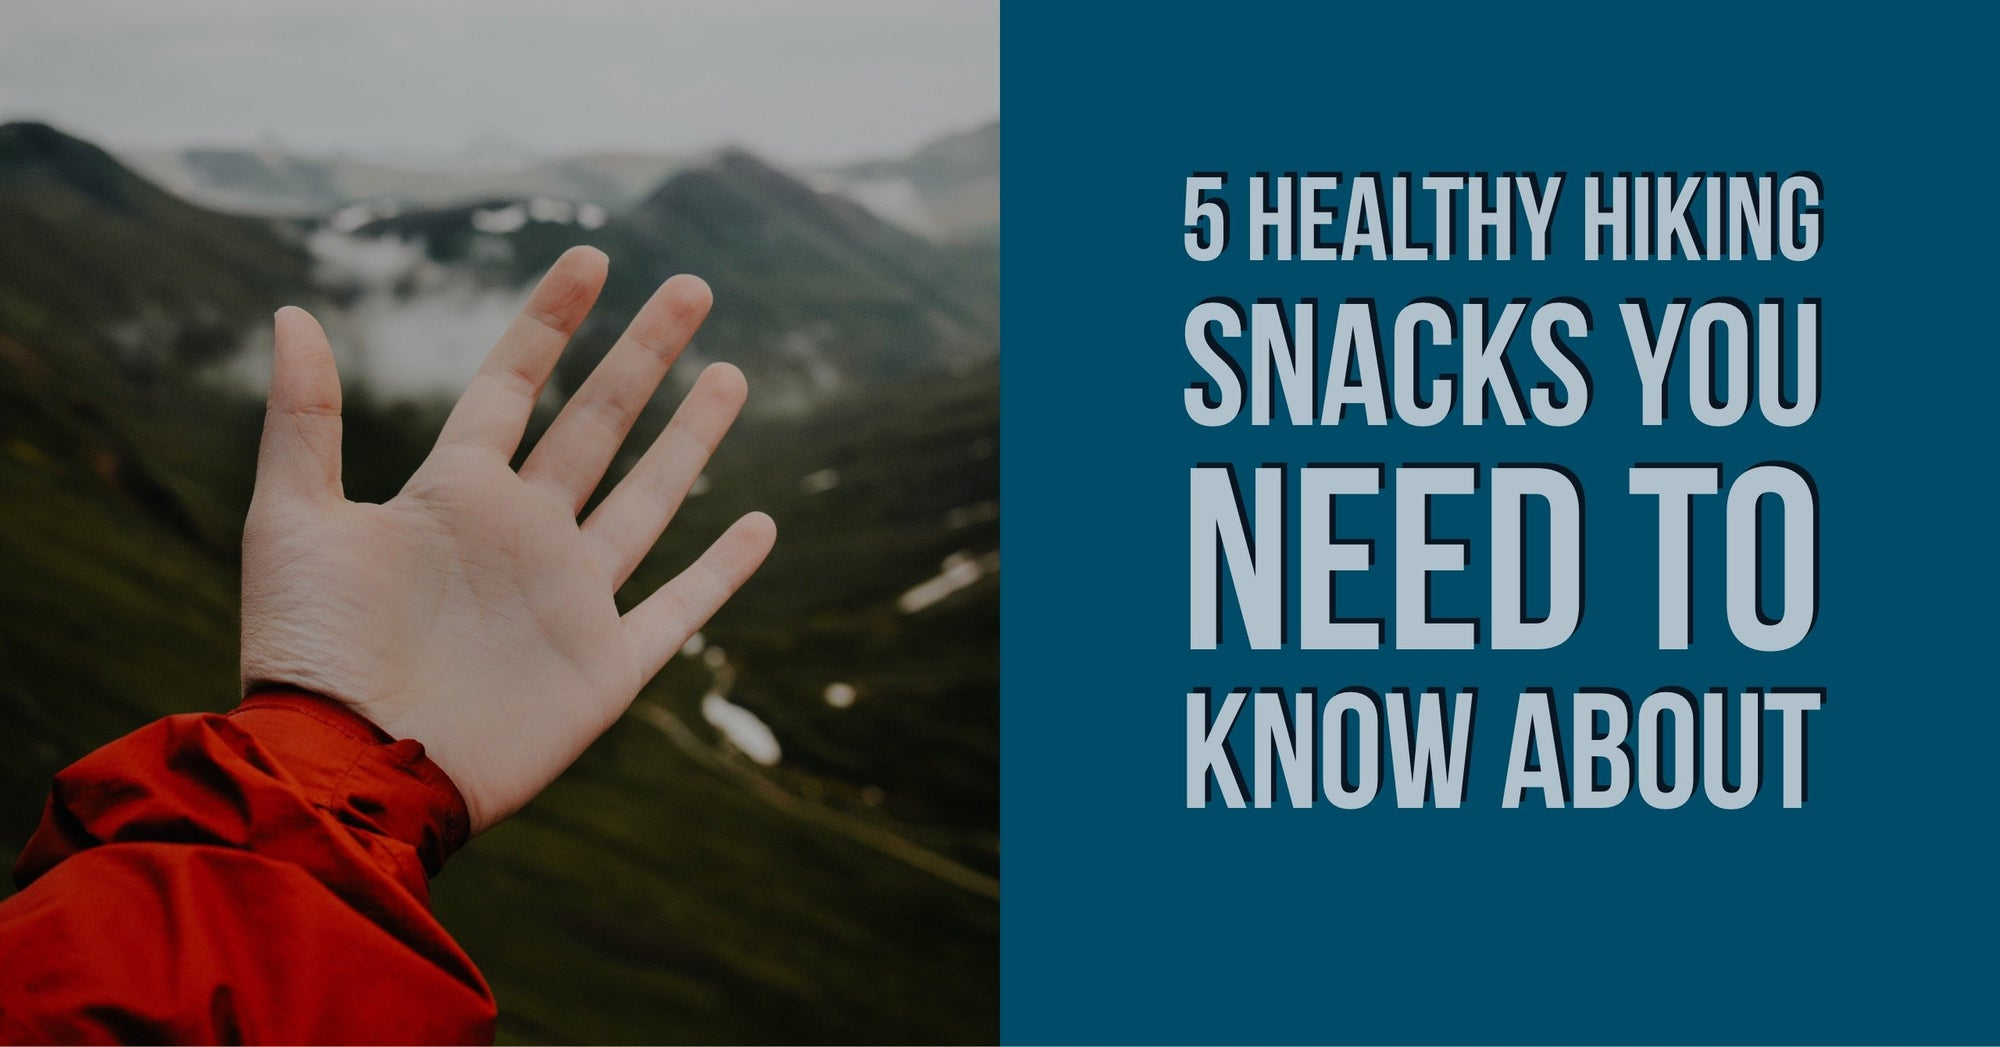 5 Healthy hiking snacks you need to know about. Visit idhikethat.com to see what hiking snacks to bring on the trail.